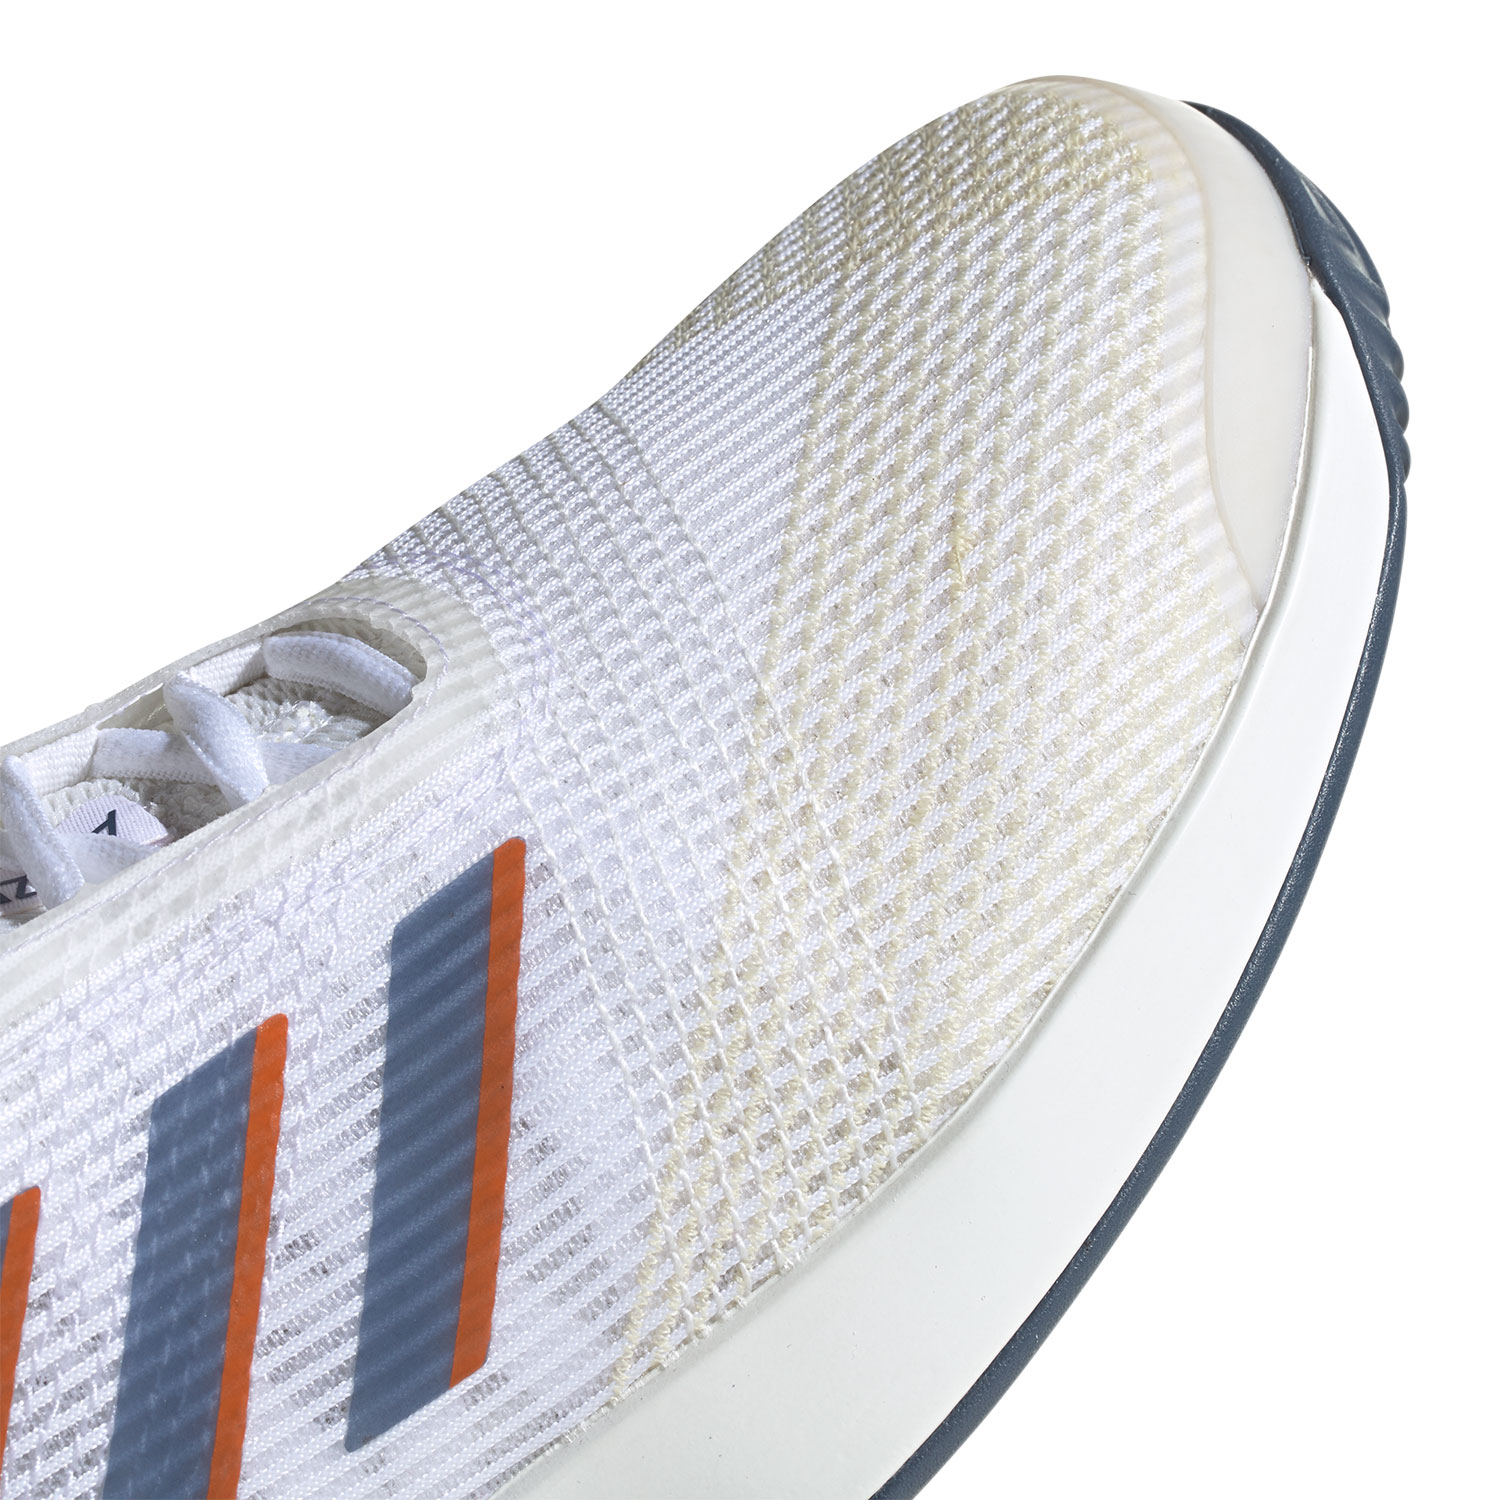 Adidas Adizero Ubersonic 3 Men's Tennis Shoes White